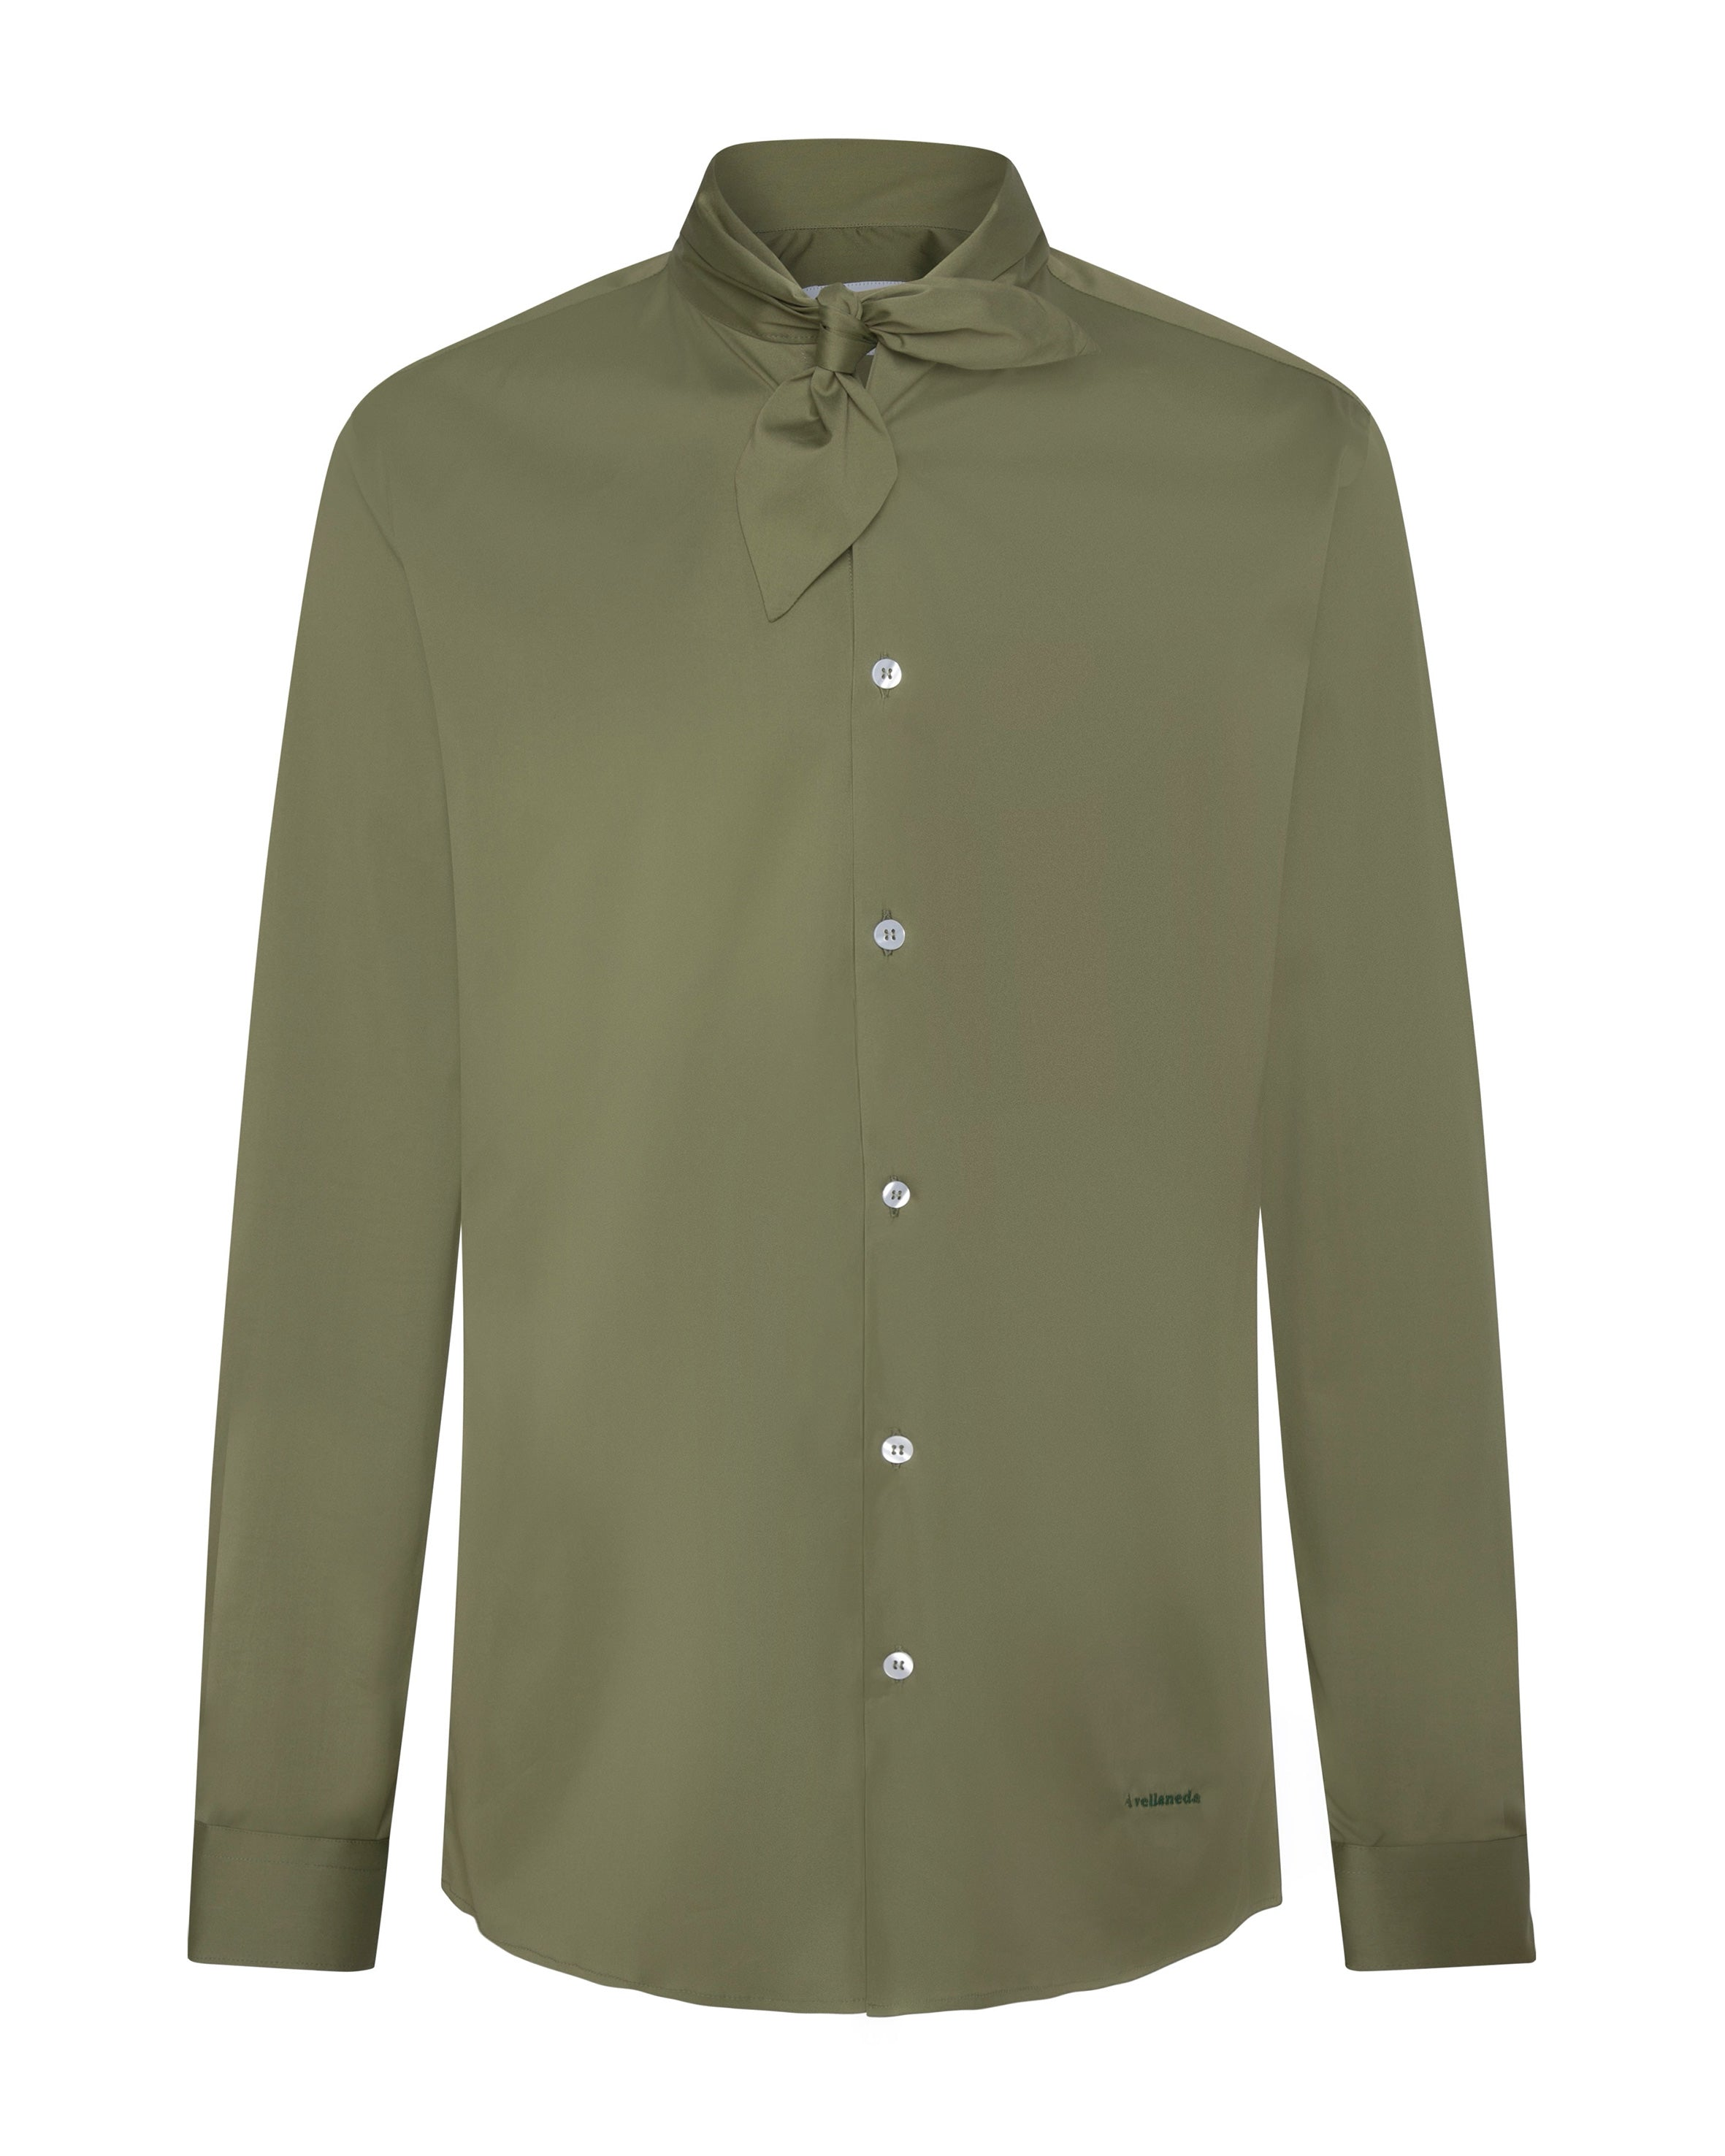 WOMEN'S GREEN DARCY SHIRT